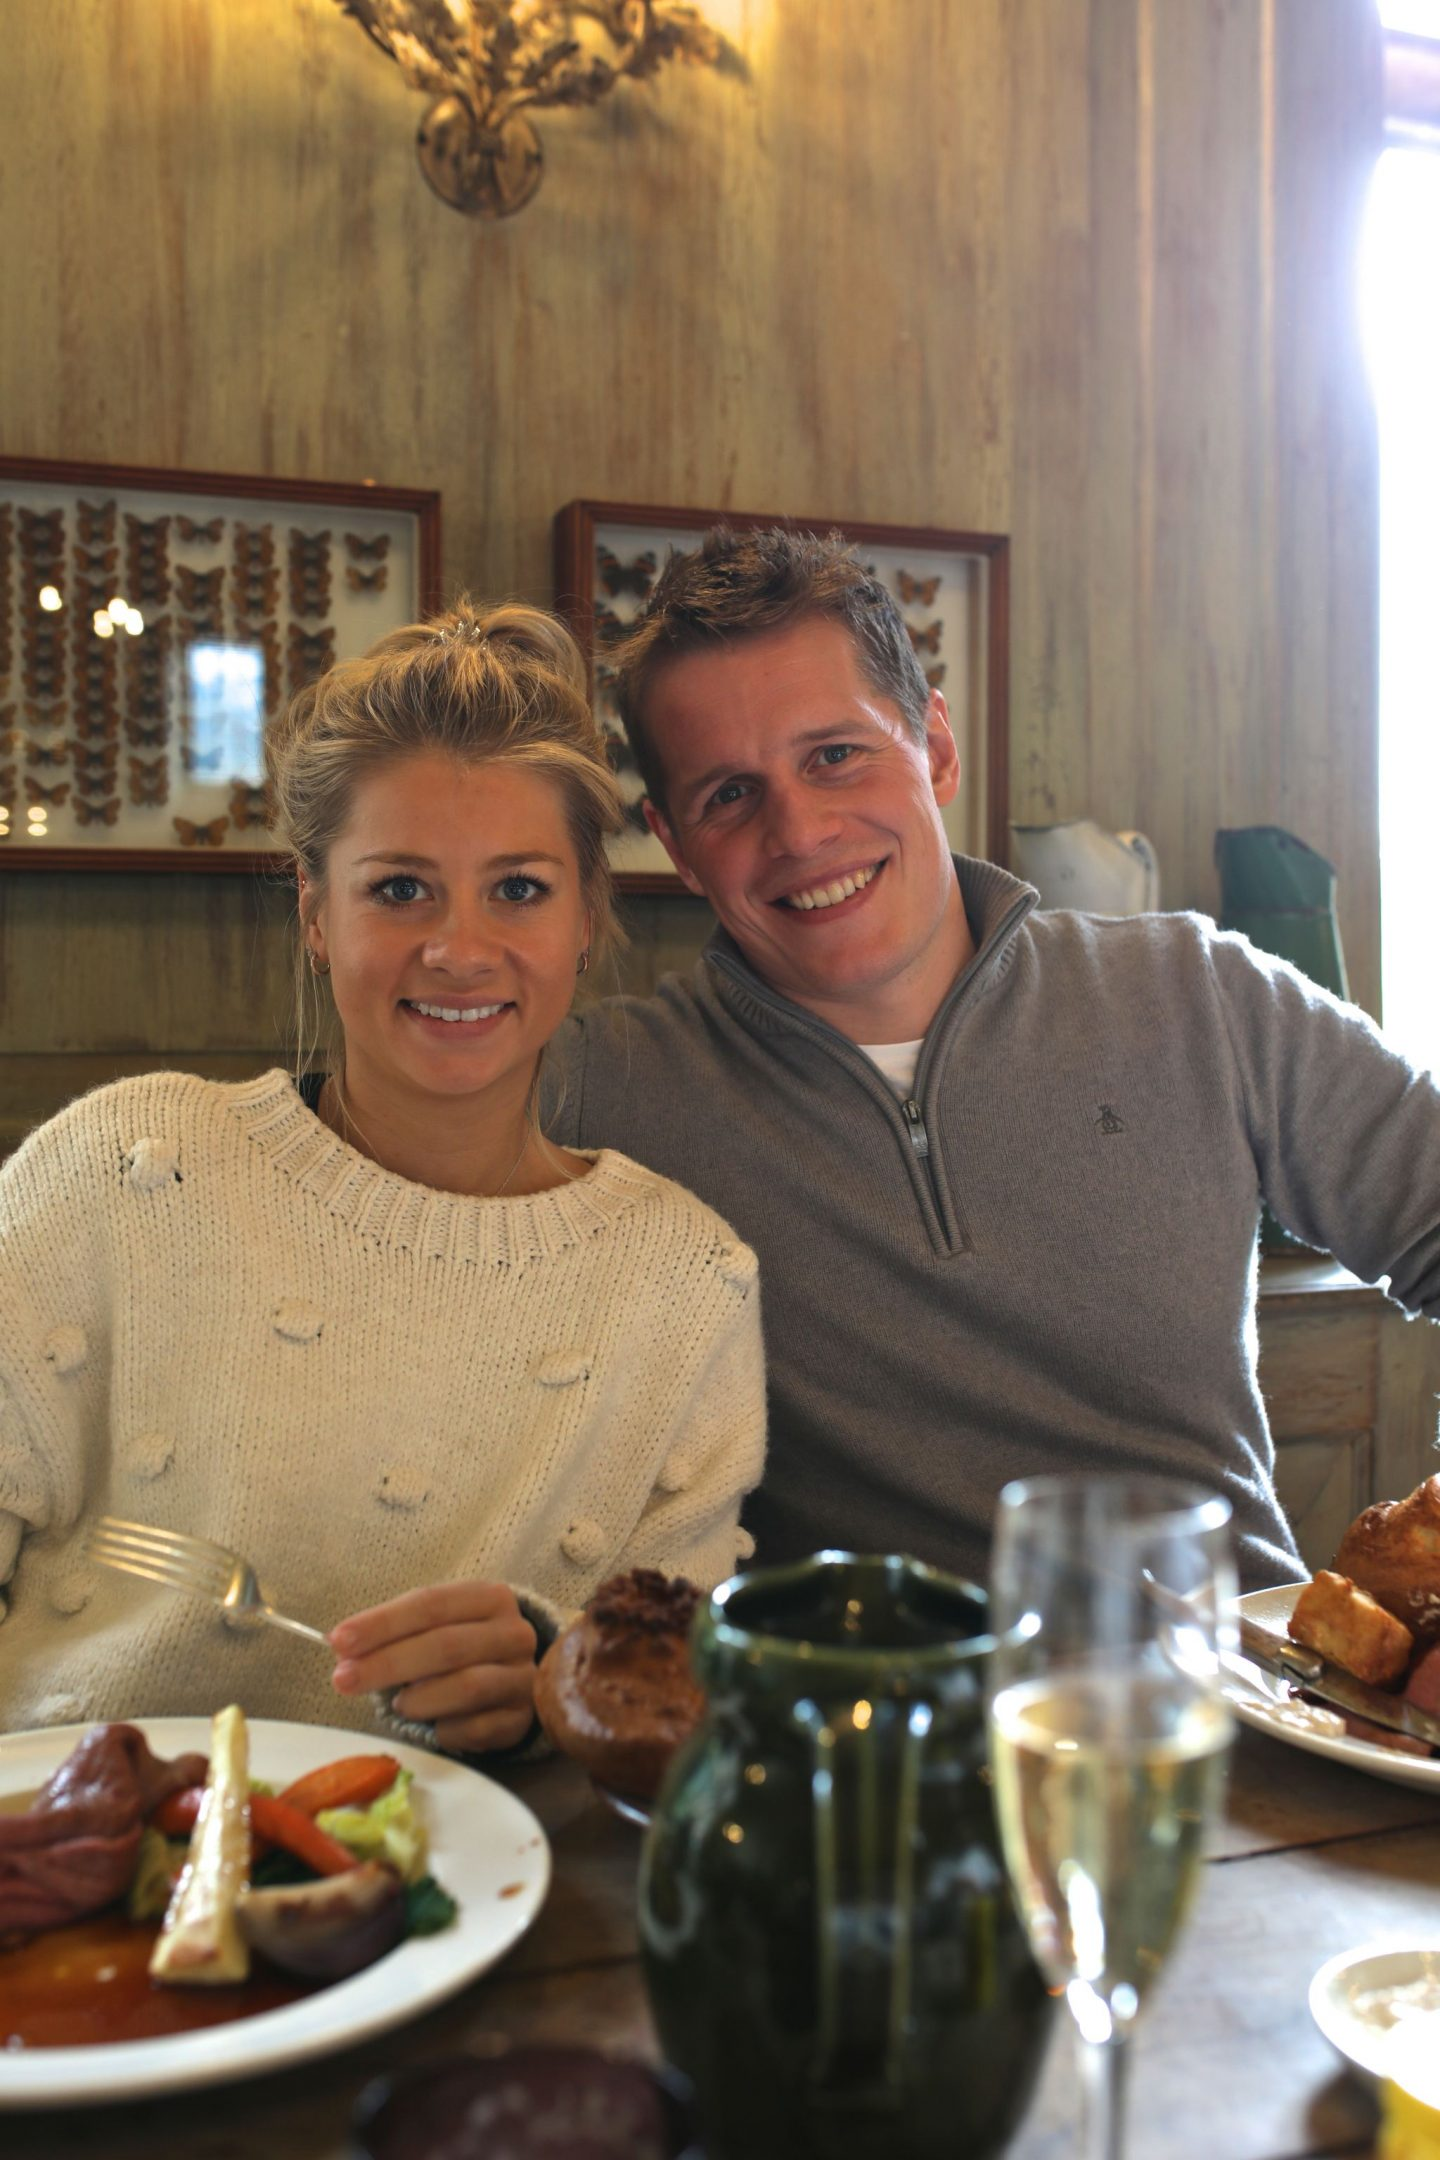 Harriet Martinovic and Tom Yellowlees, Sunday Lunch at The Pig at Combe, Gittisham, Devon, Katie Heath KALANCHOE,